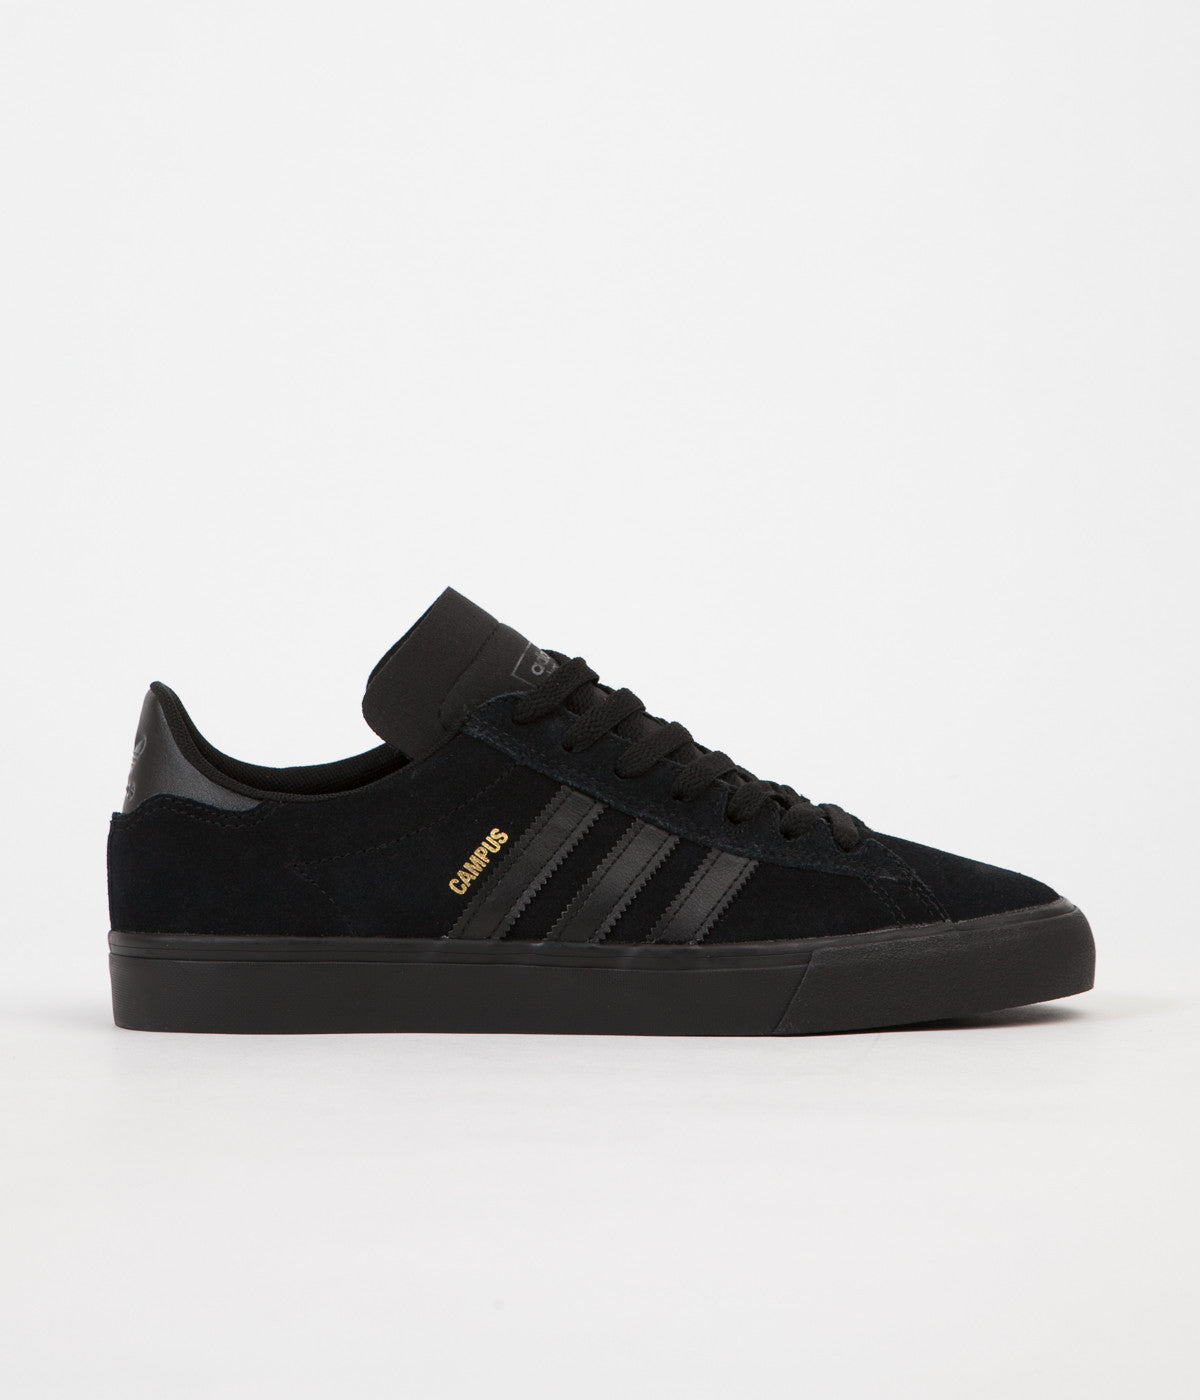 32d52017921 ... Adidas Campus Vulc II Shoes - Core Black   Core Black   Core Black ...